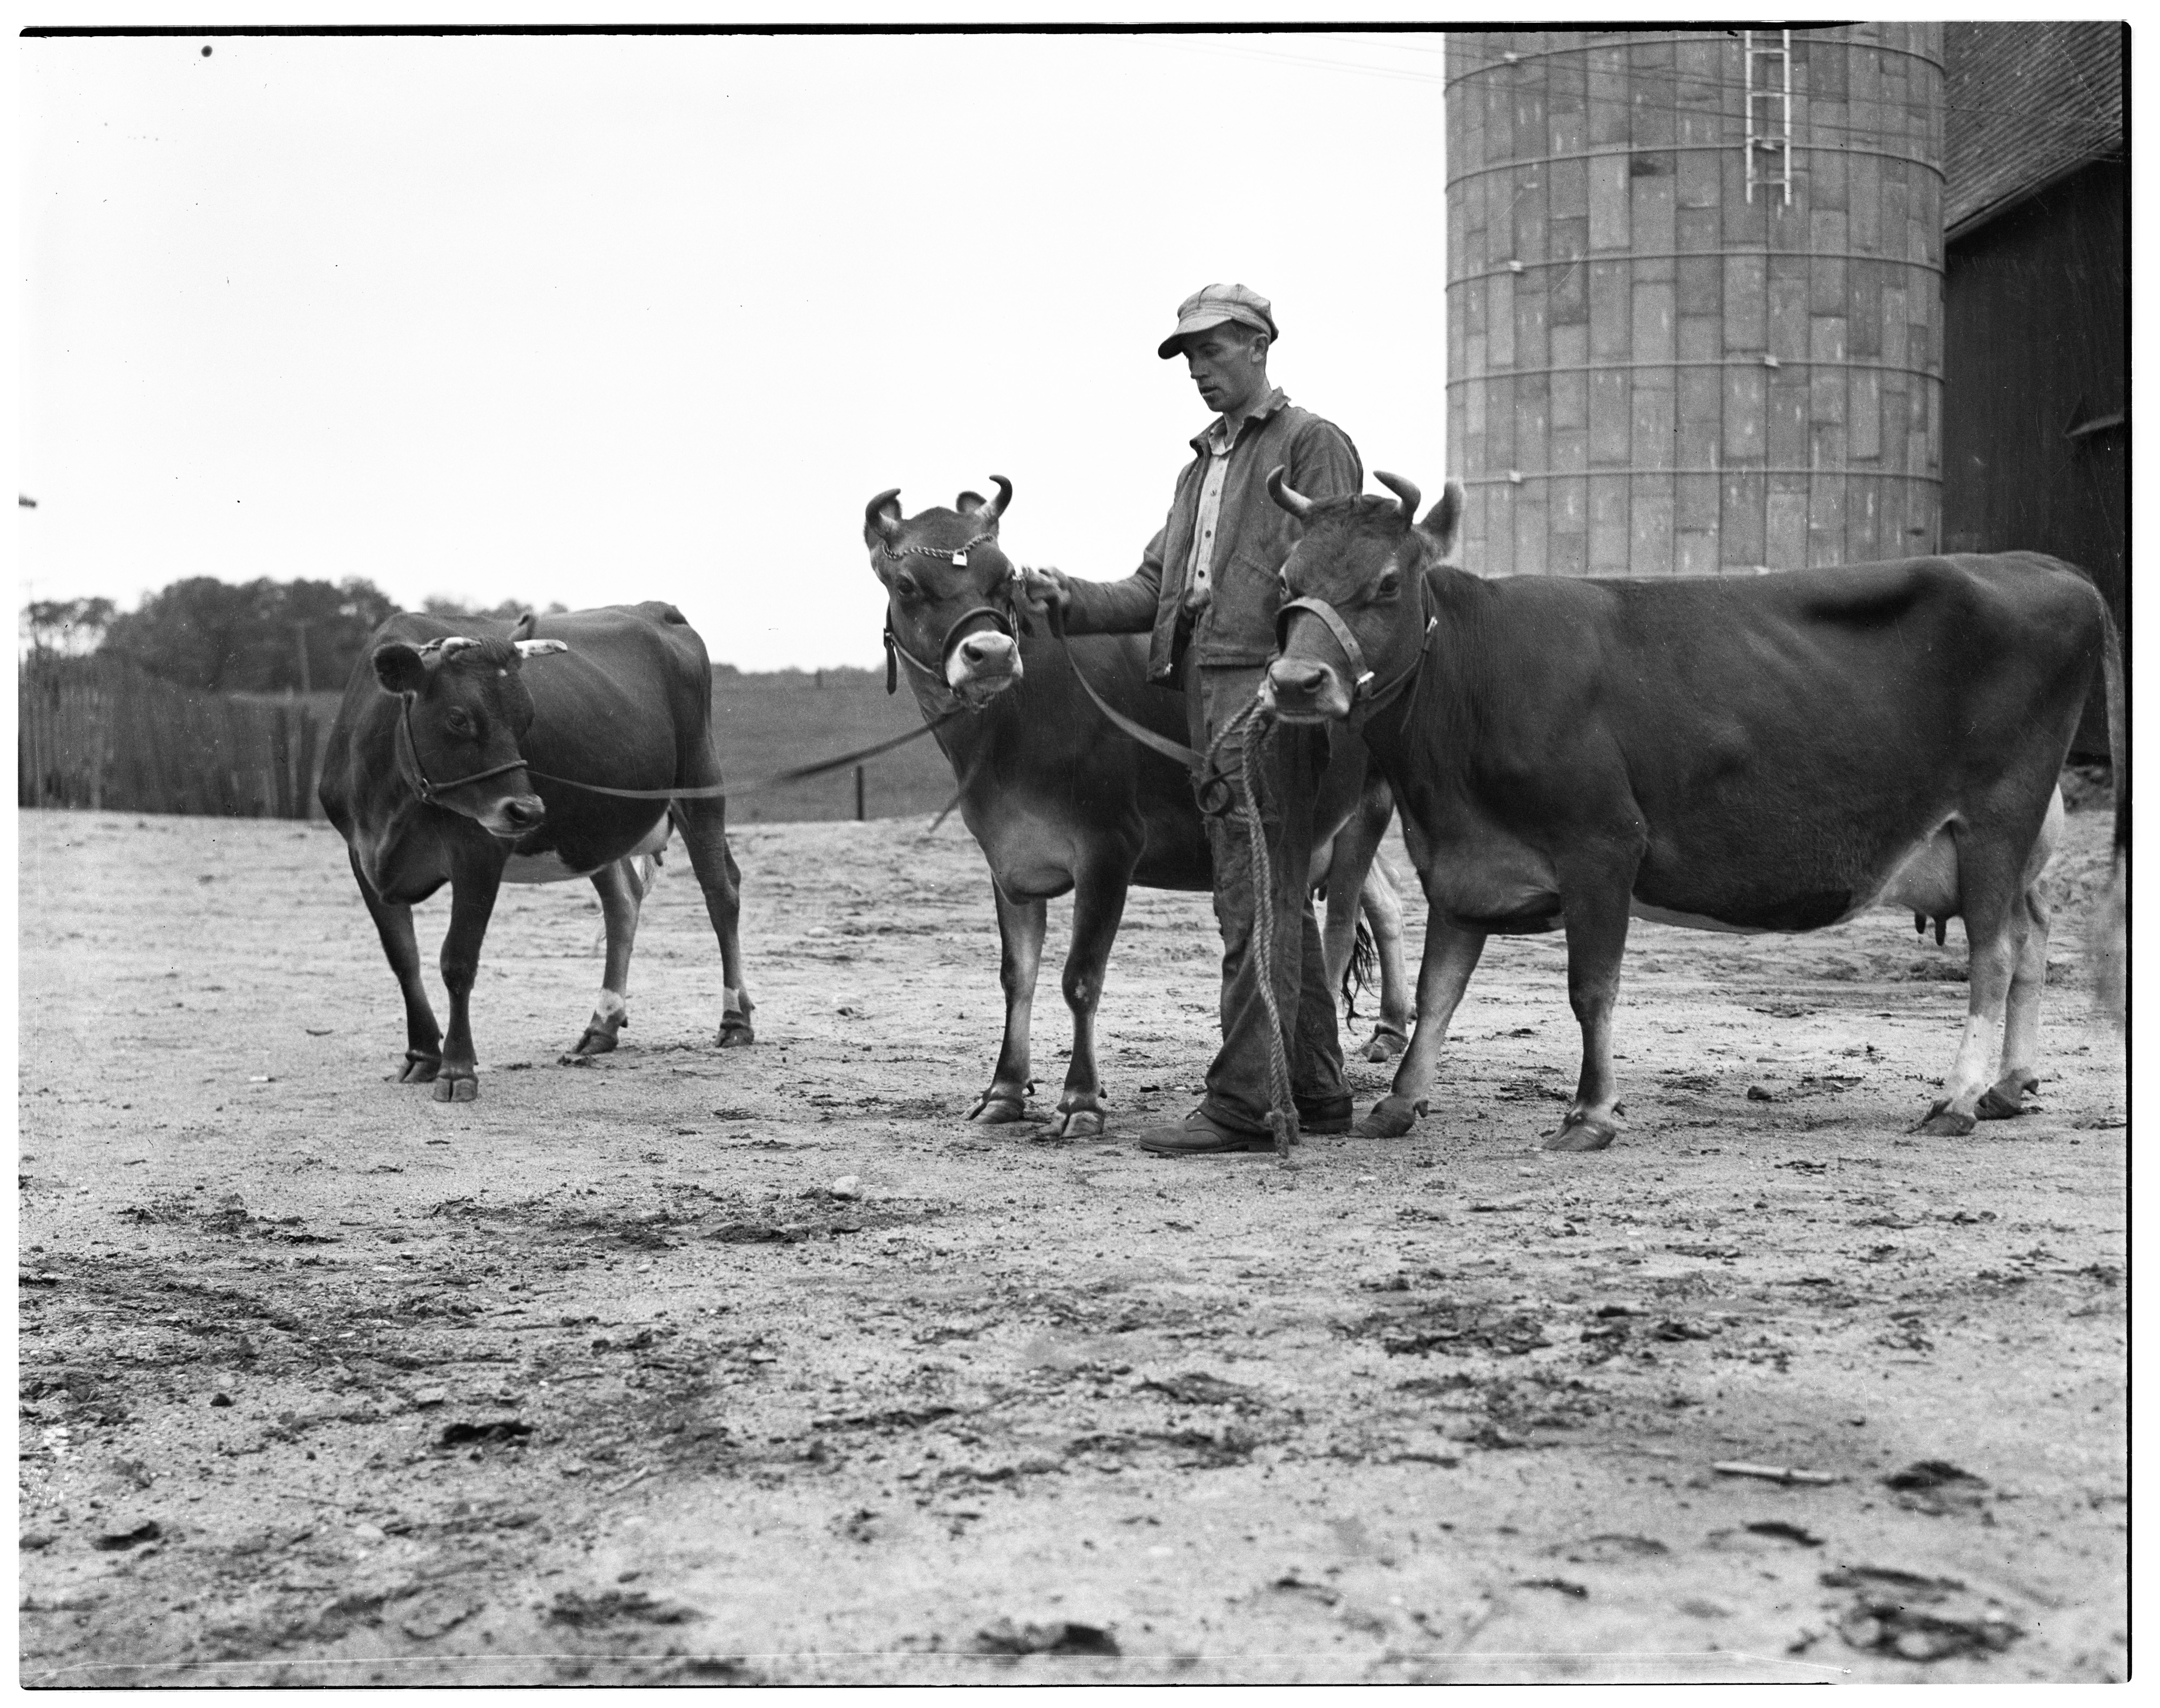 Melvin Hartman With Cows For National Dairy Show, September 1936 image